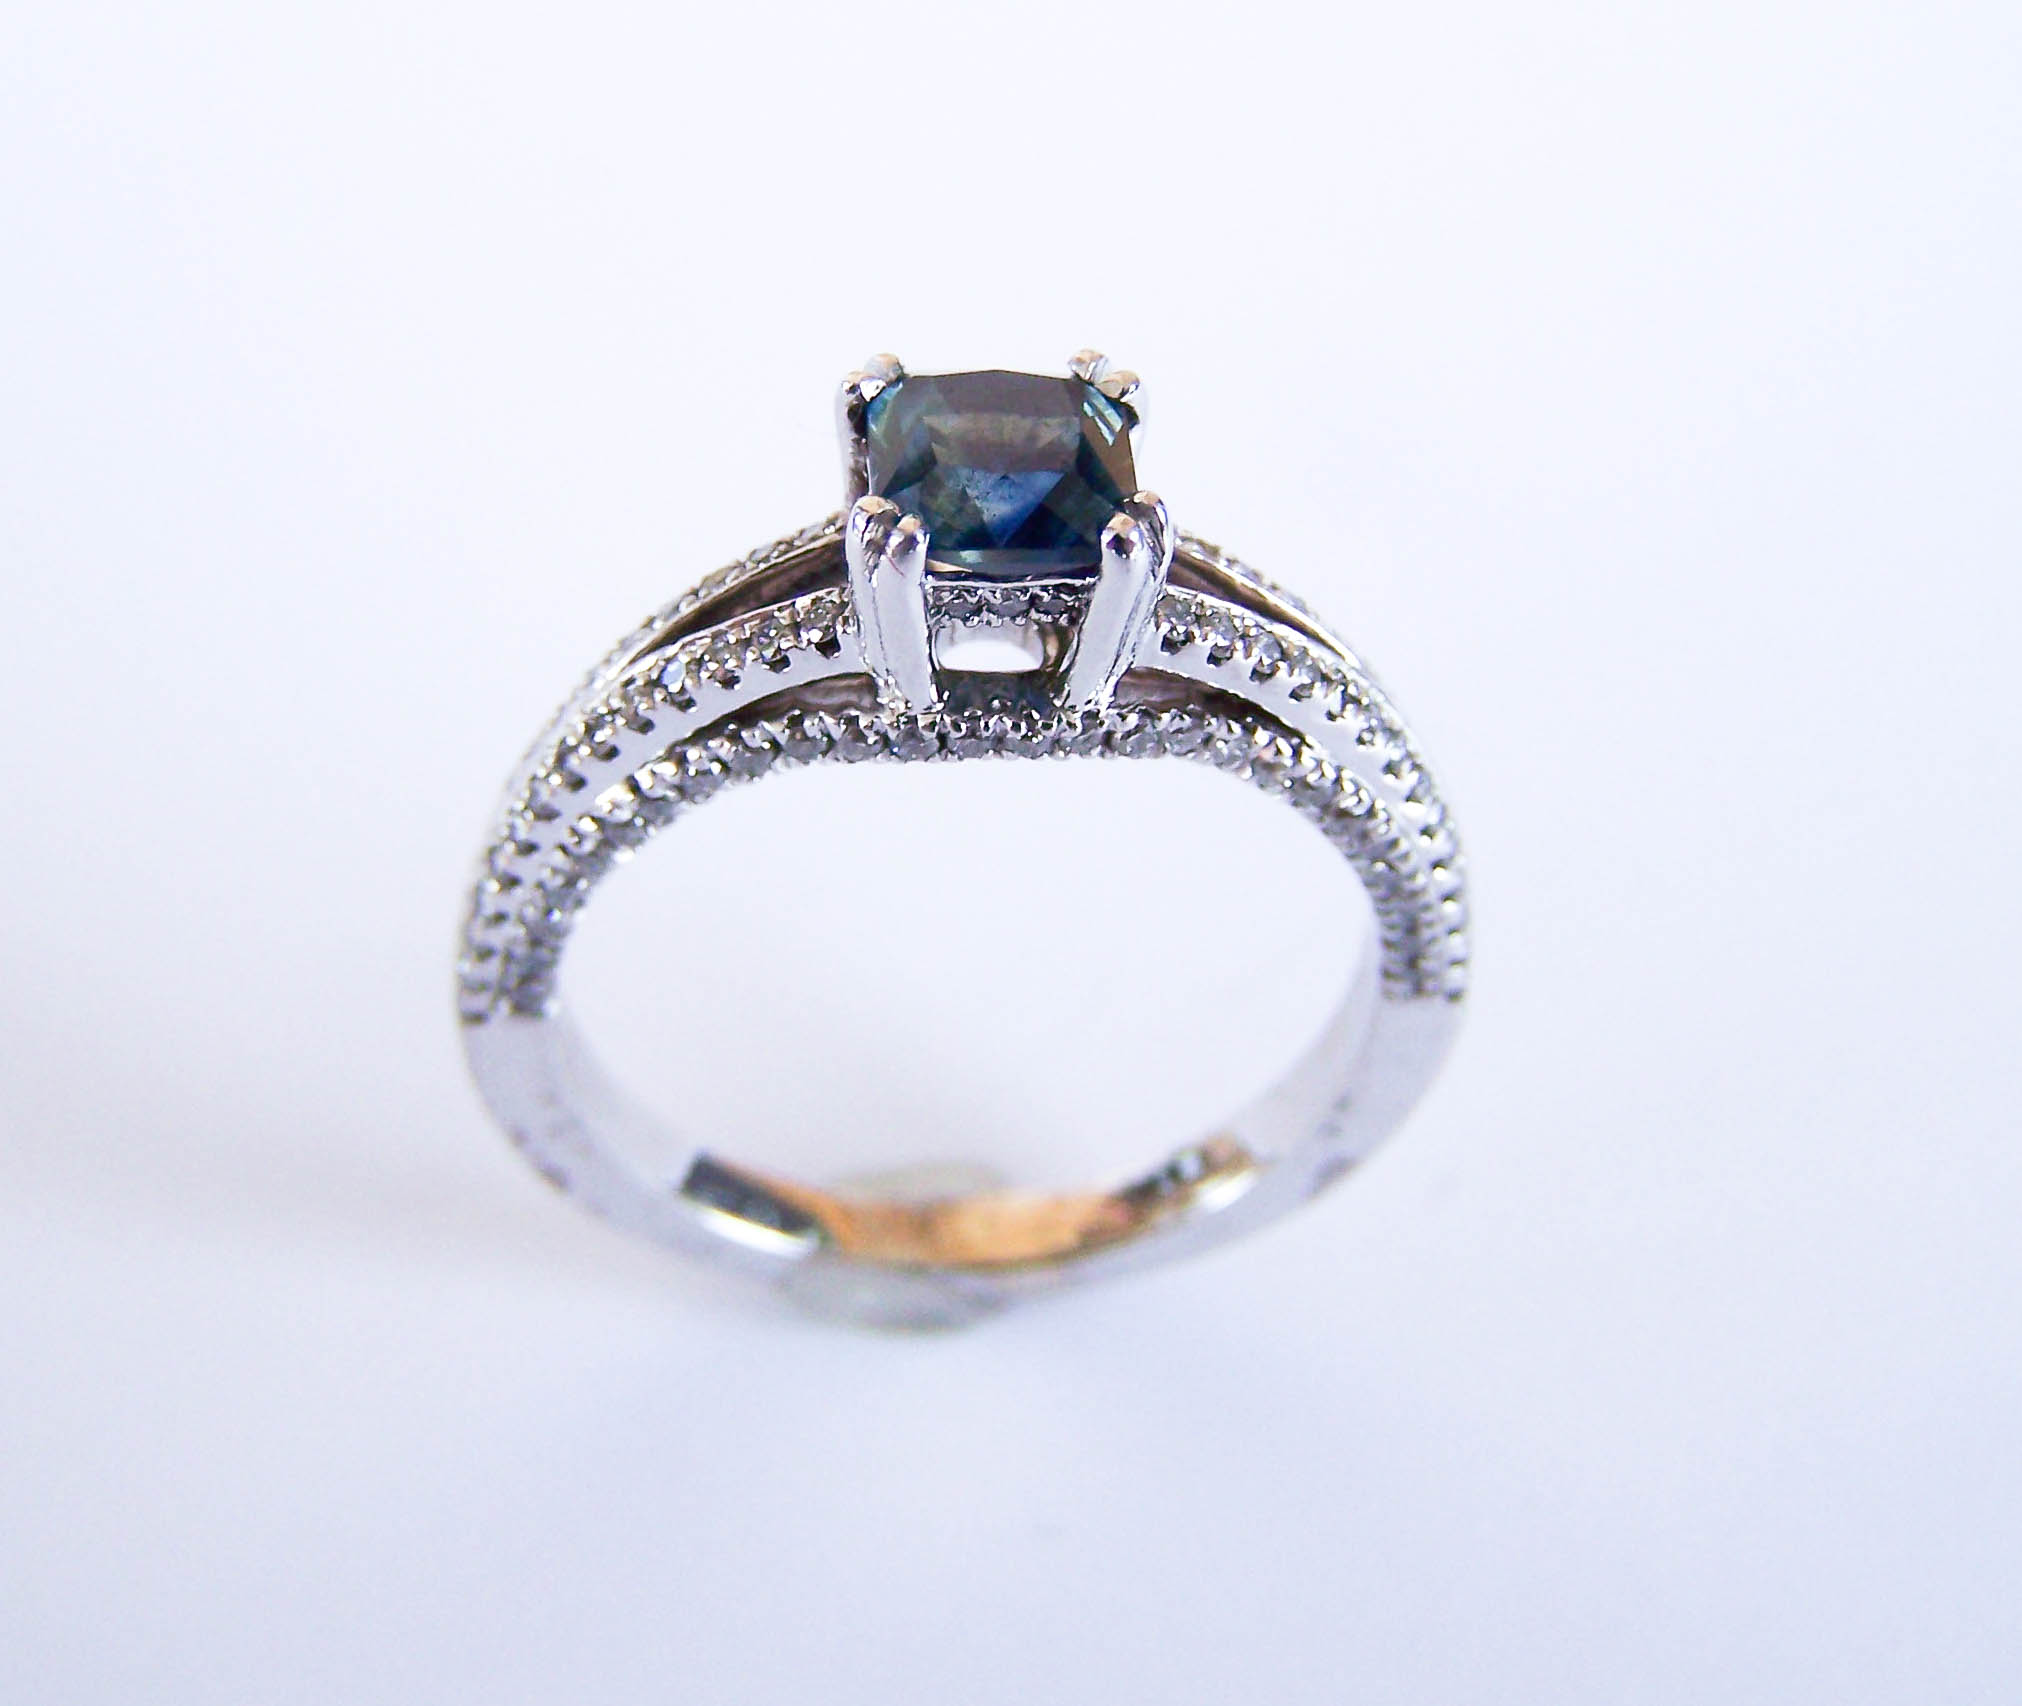 200-0698  Mikesell's, White 18 Karat Engagement Ring with One 0.82 Carat Radiant Montana Sapphire and 0.43tw Round Diamonds $2,075.00